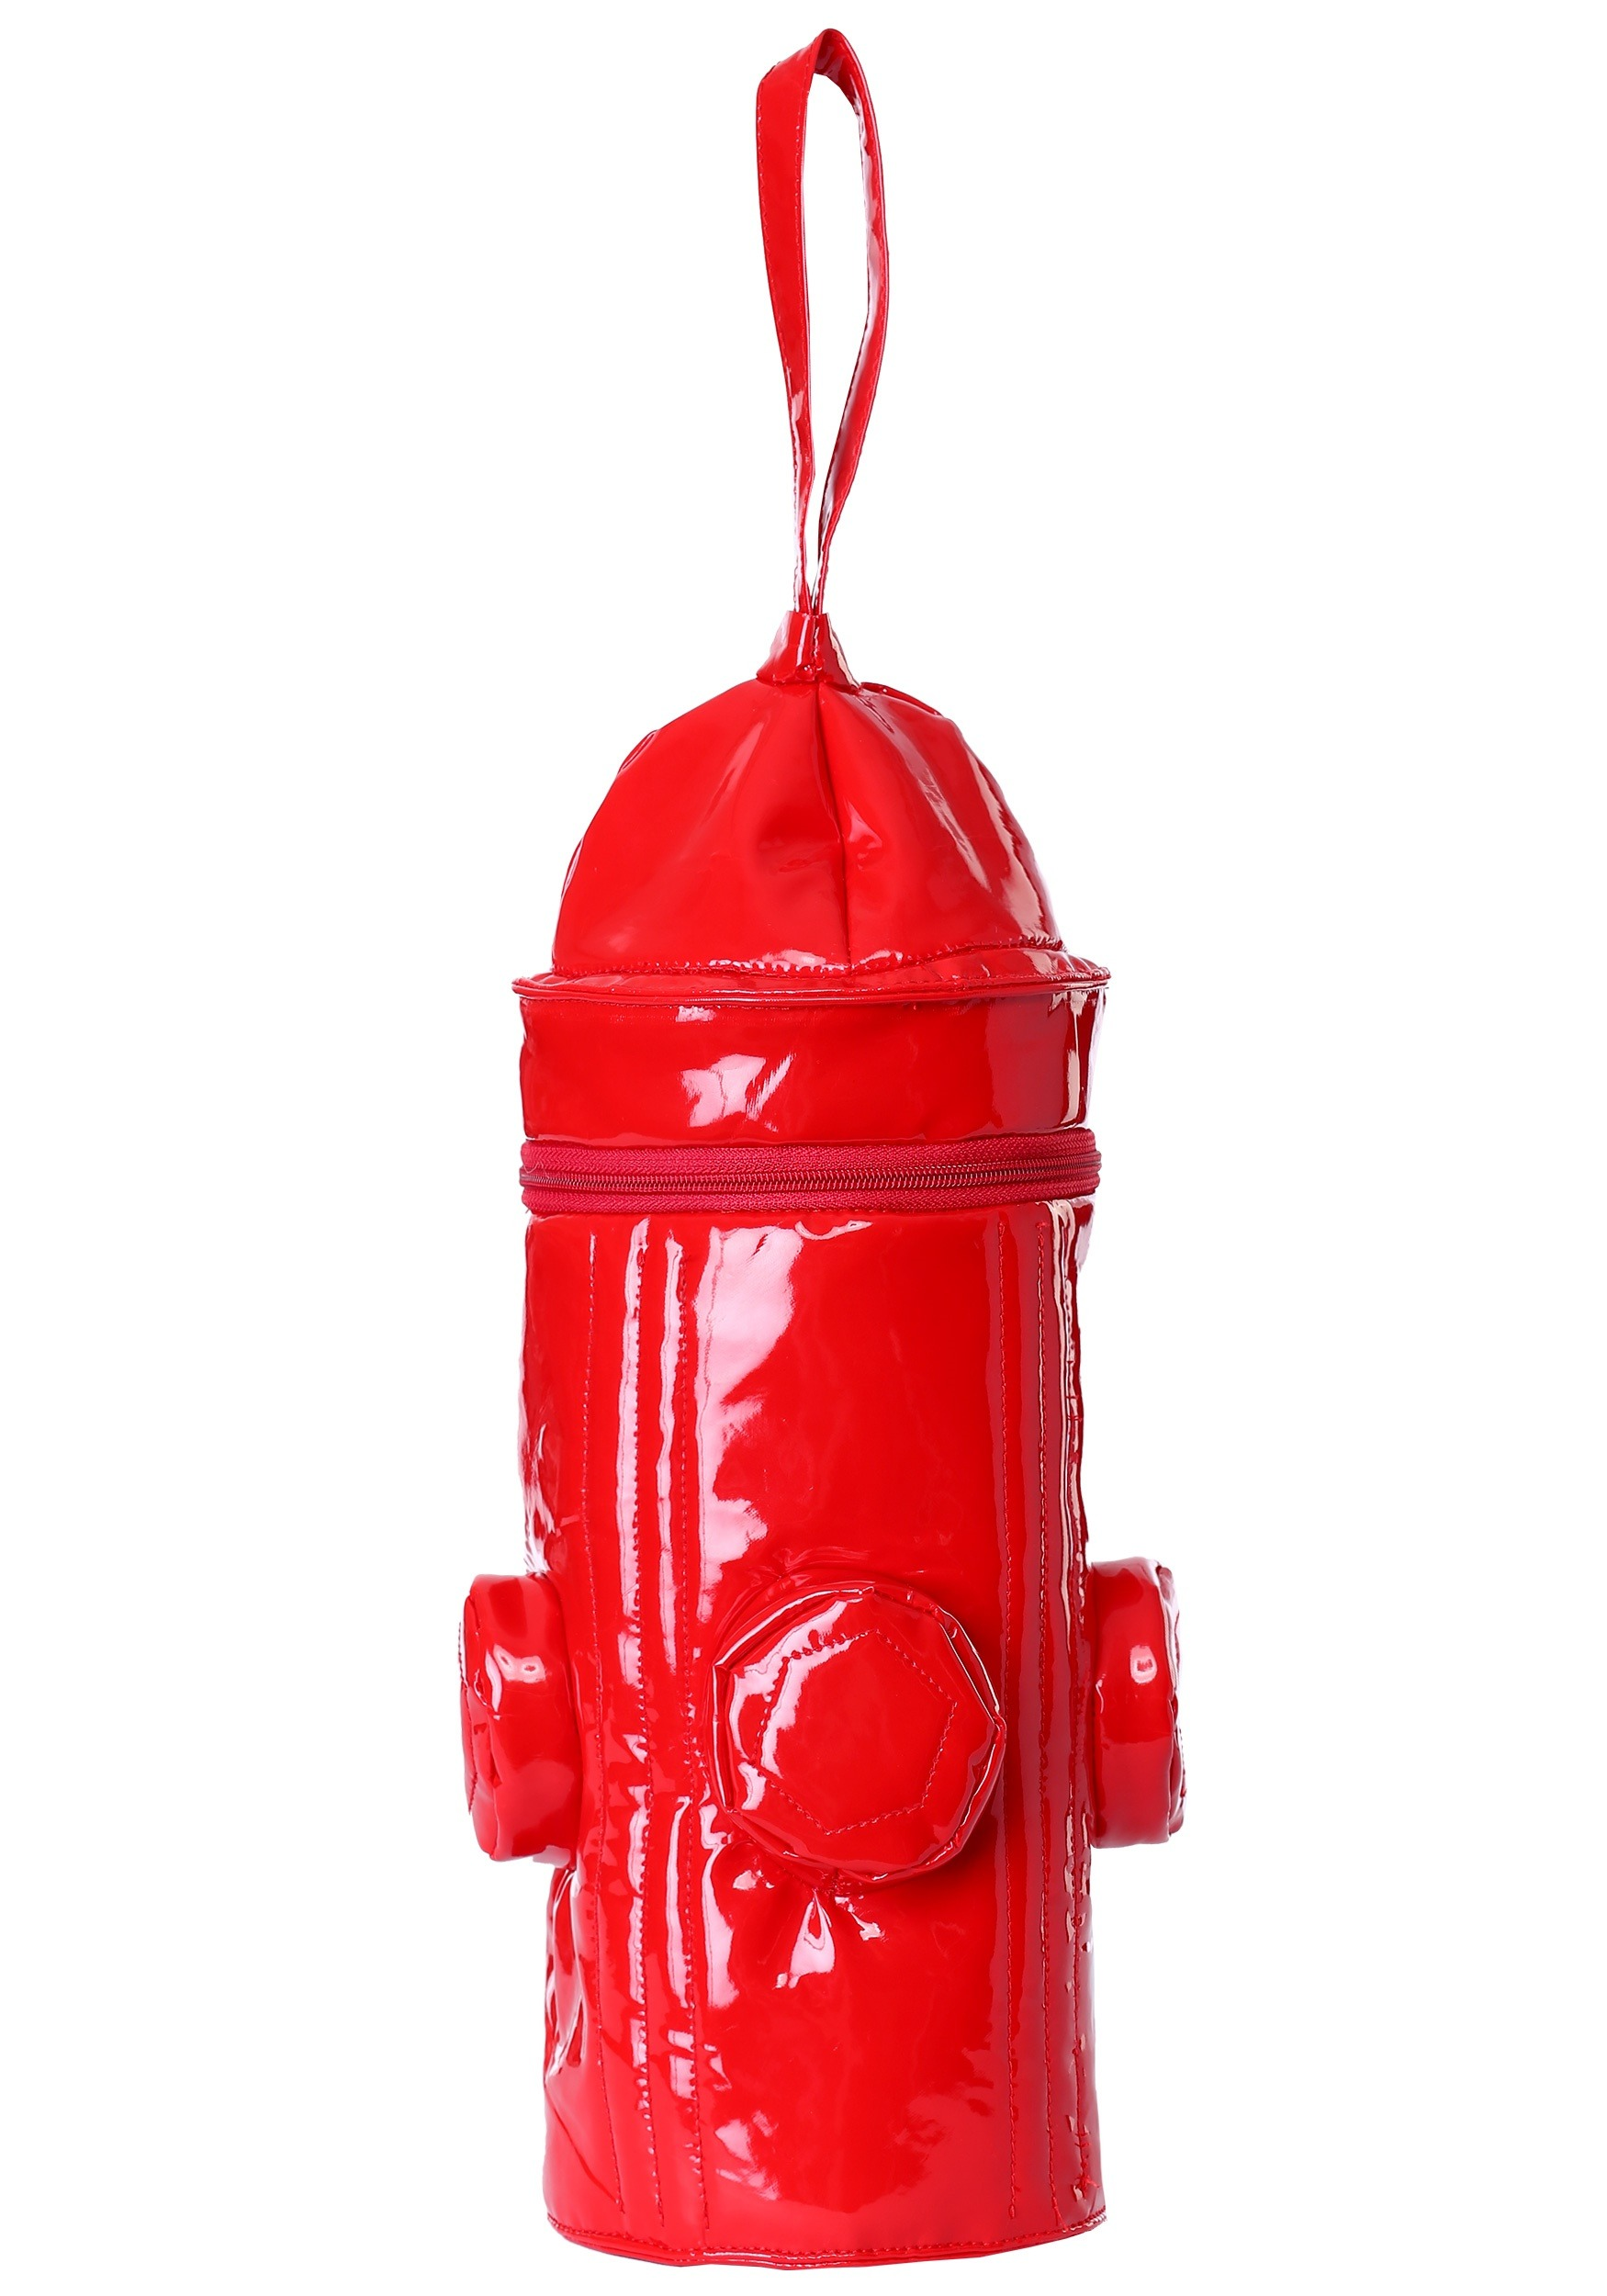 Red Fire Hydrant Purse (FUN4068-ST FUN4068) photo